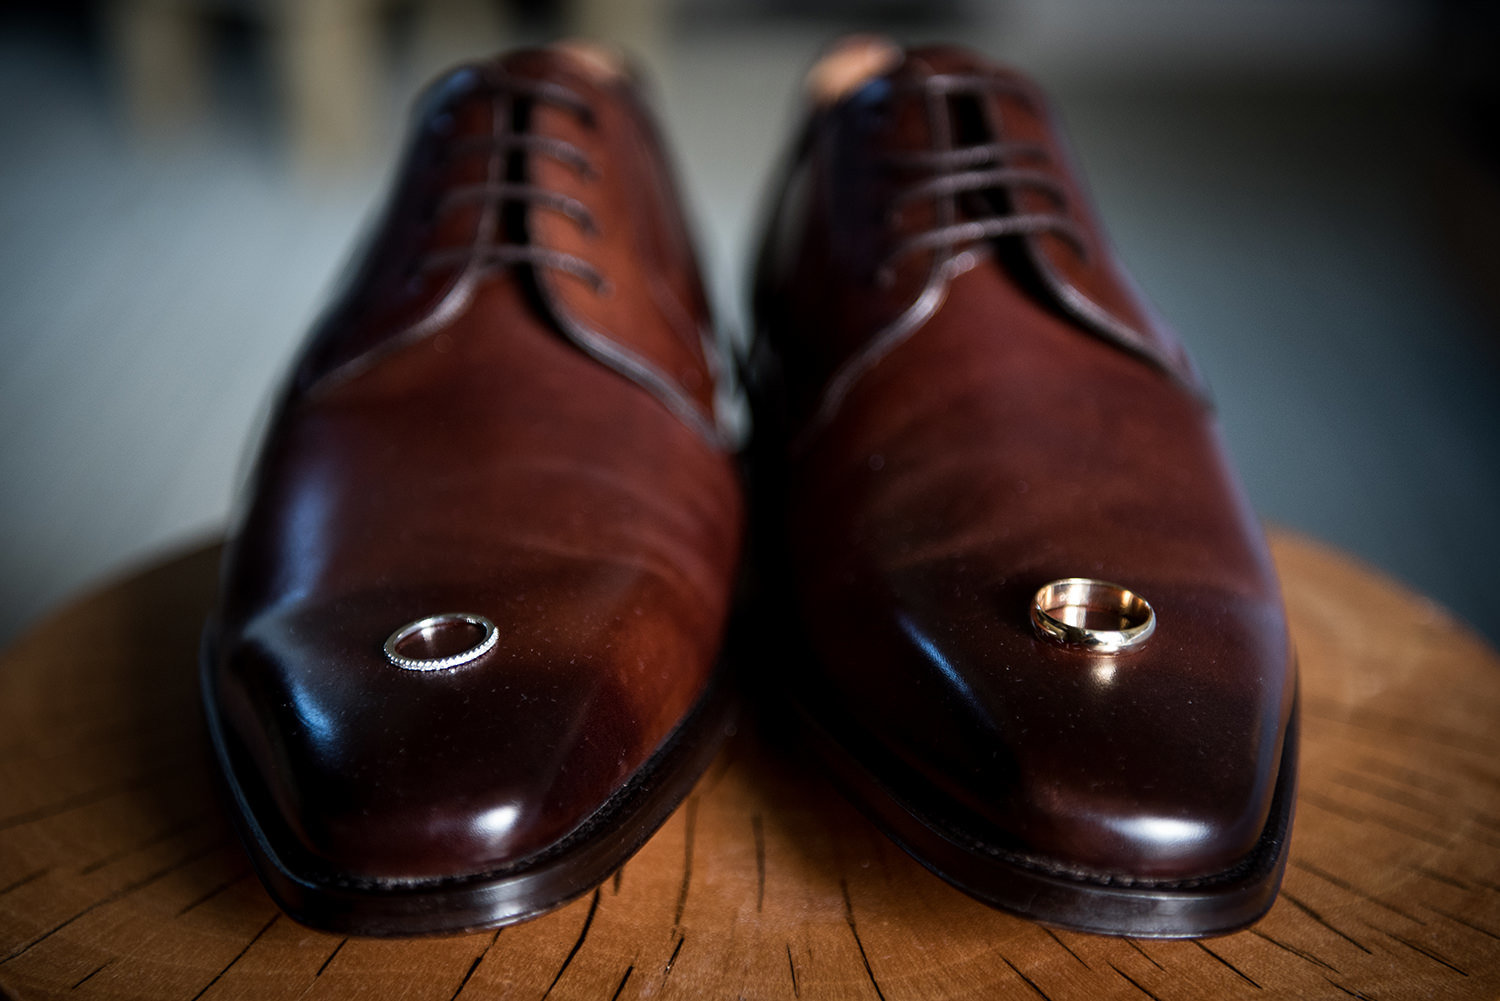 grooms shoes with rings